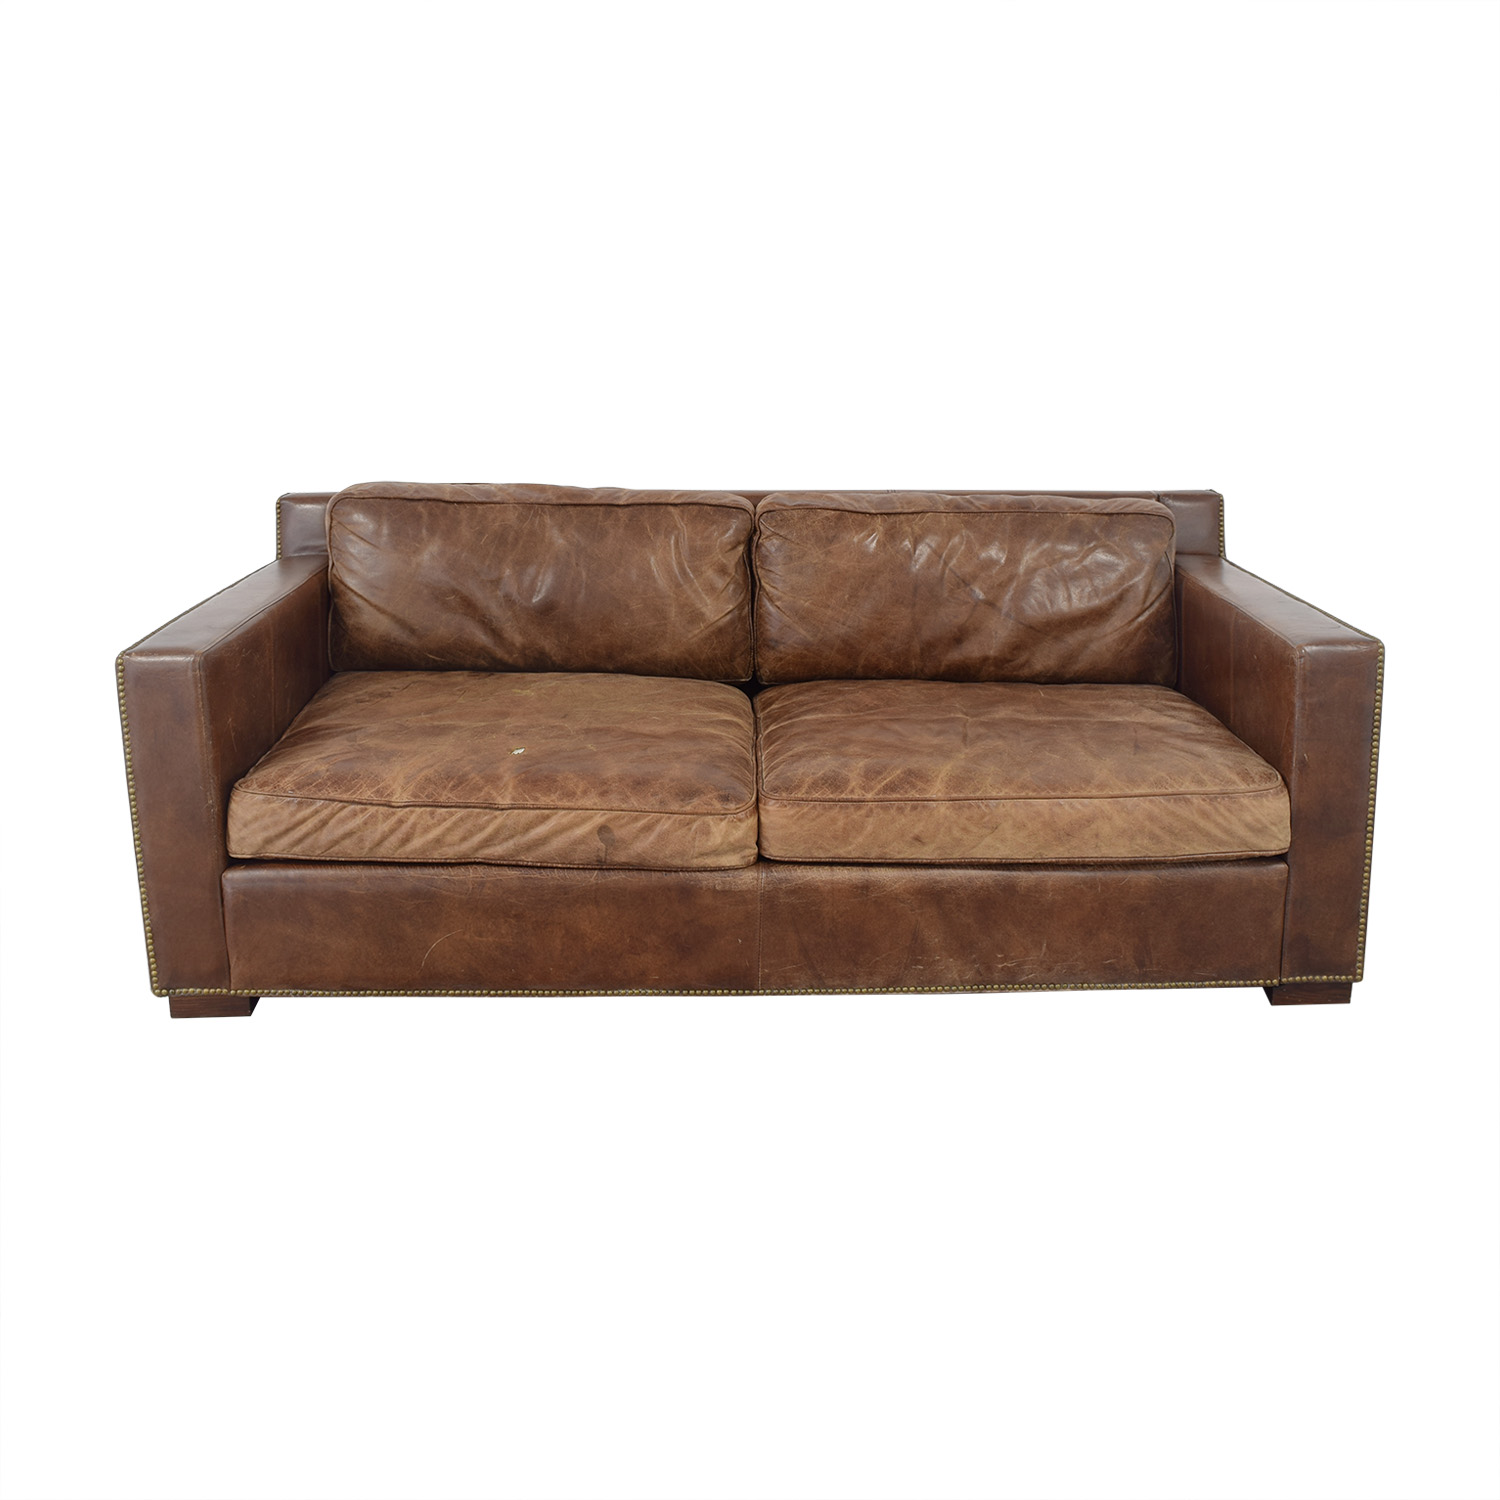 Restoration Hardware Restoration Hardware Collins Leather Sofa with Nailheads brown